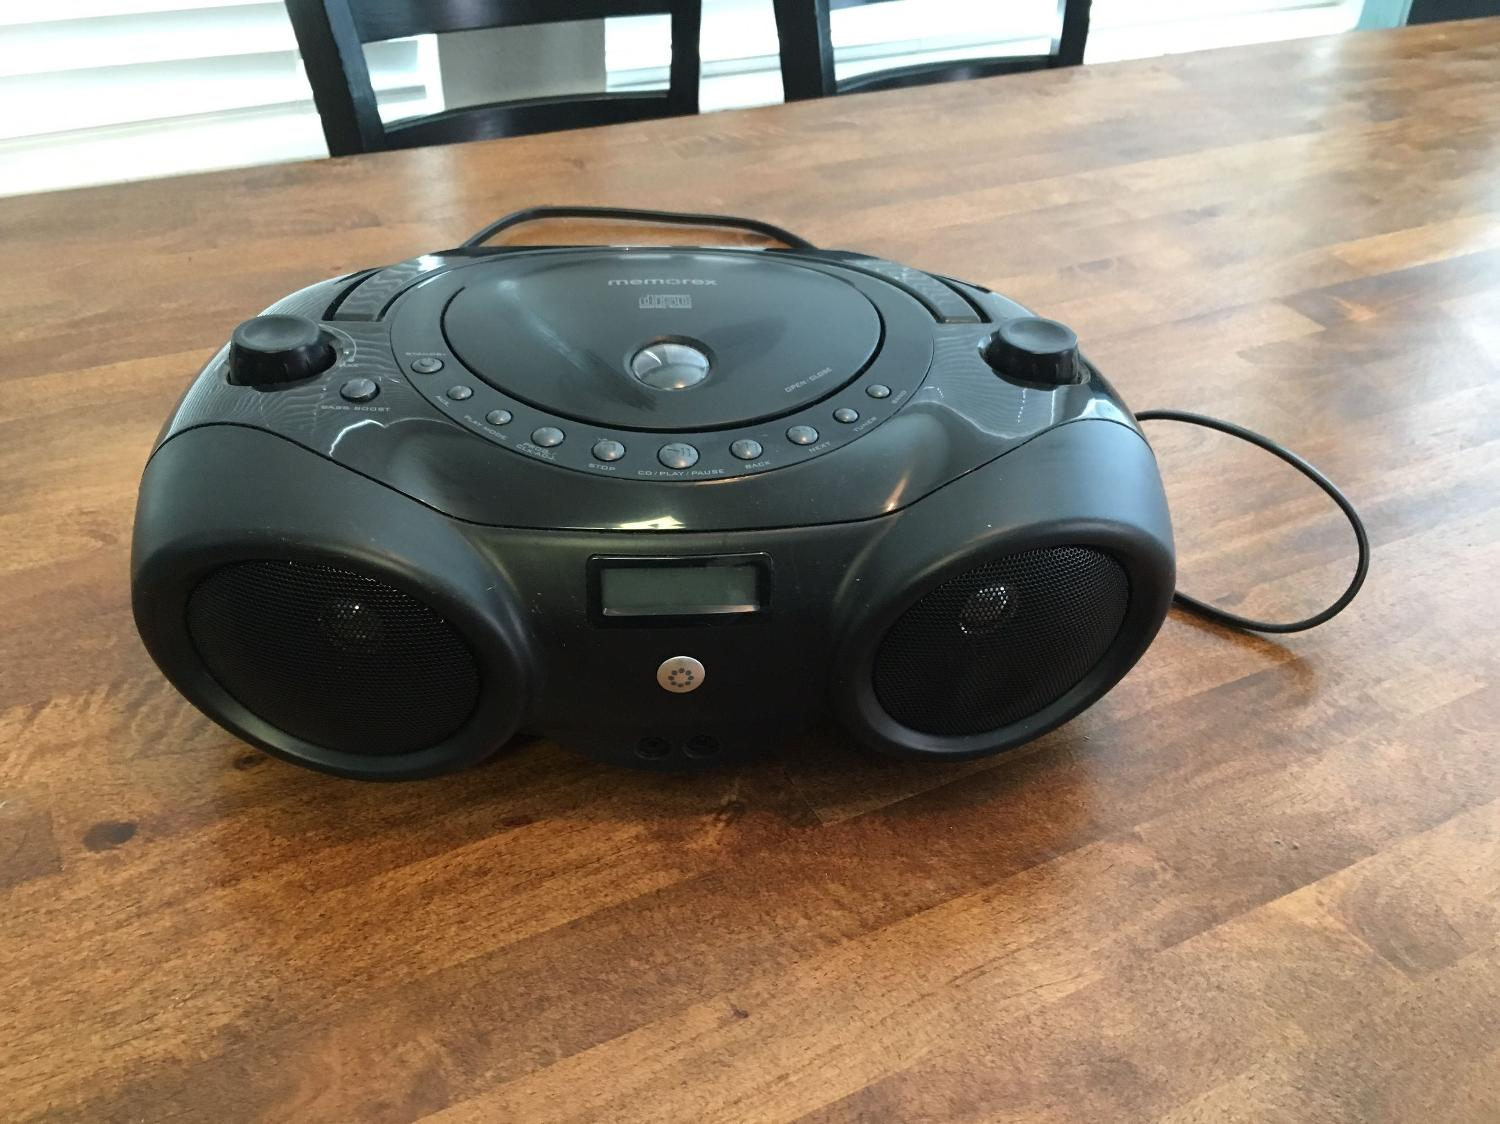 111691421454 besides Memorex Portable CD Boombox Cassette Recorder Am FM Radio Purple New in addition 195104006 likewise 15051008 furthermore Search. on memorex portable cd player